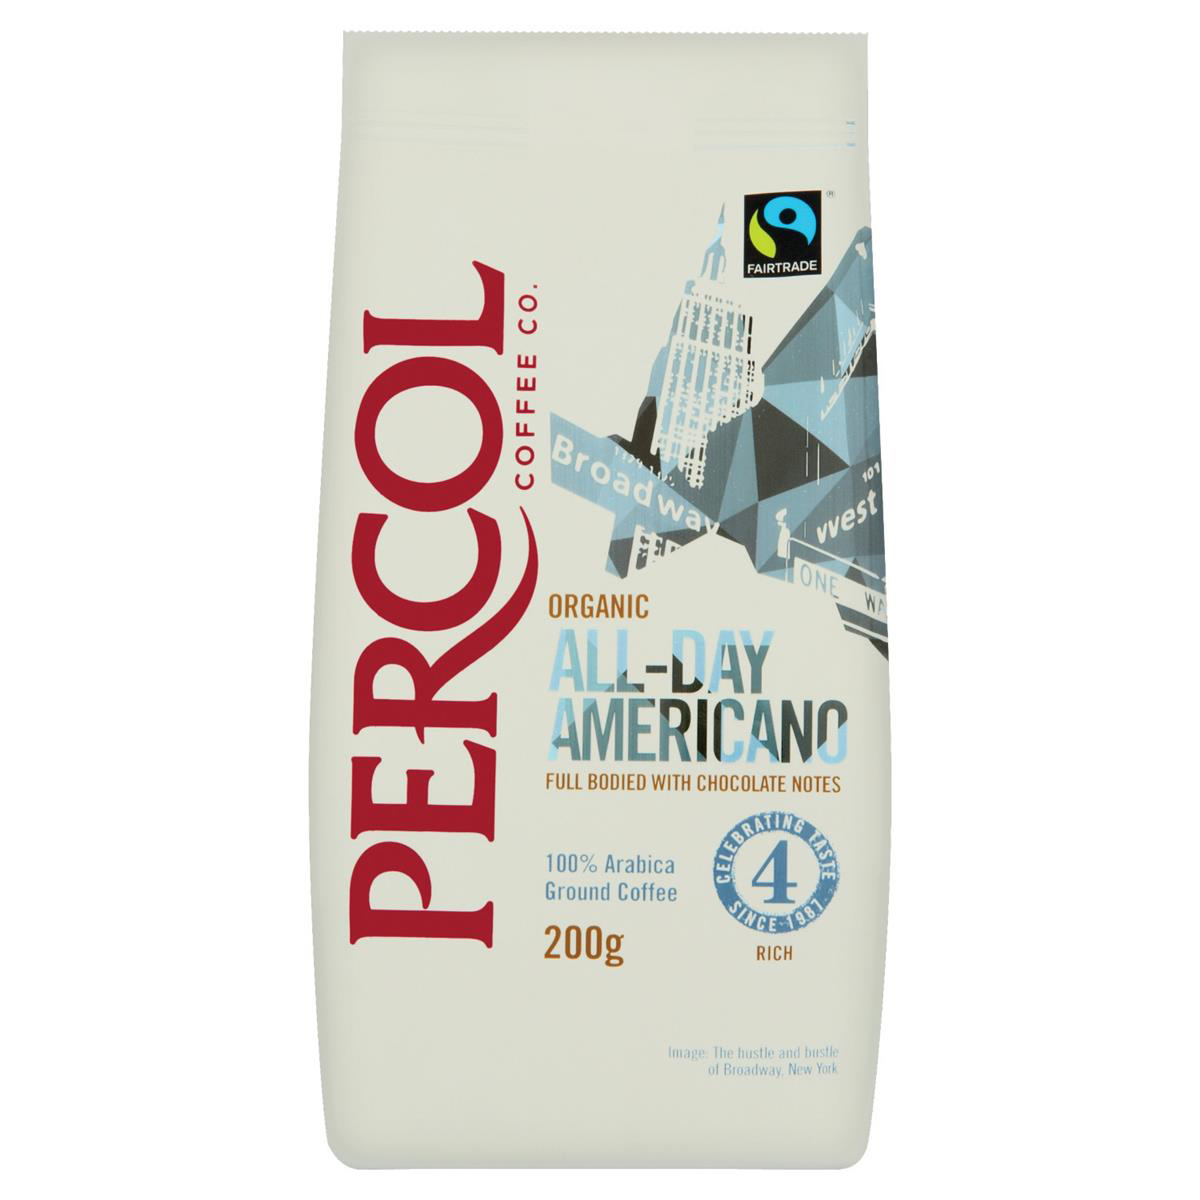 Coffee Percol Fairtrade All Day Americano Ground Coffee Organic Arabica High Roast 200g Ref 0403154